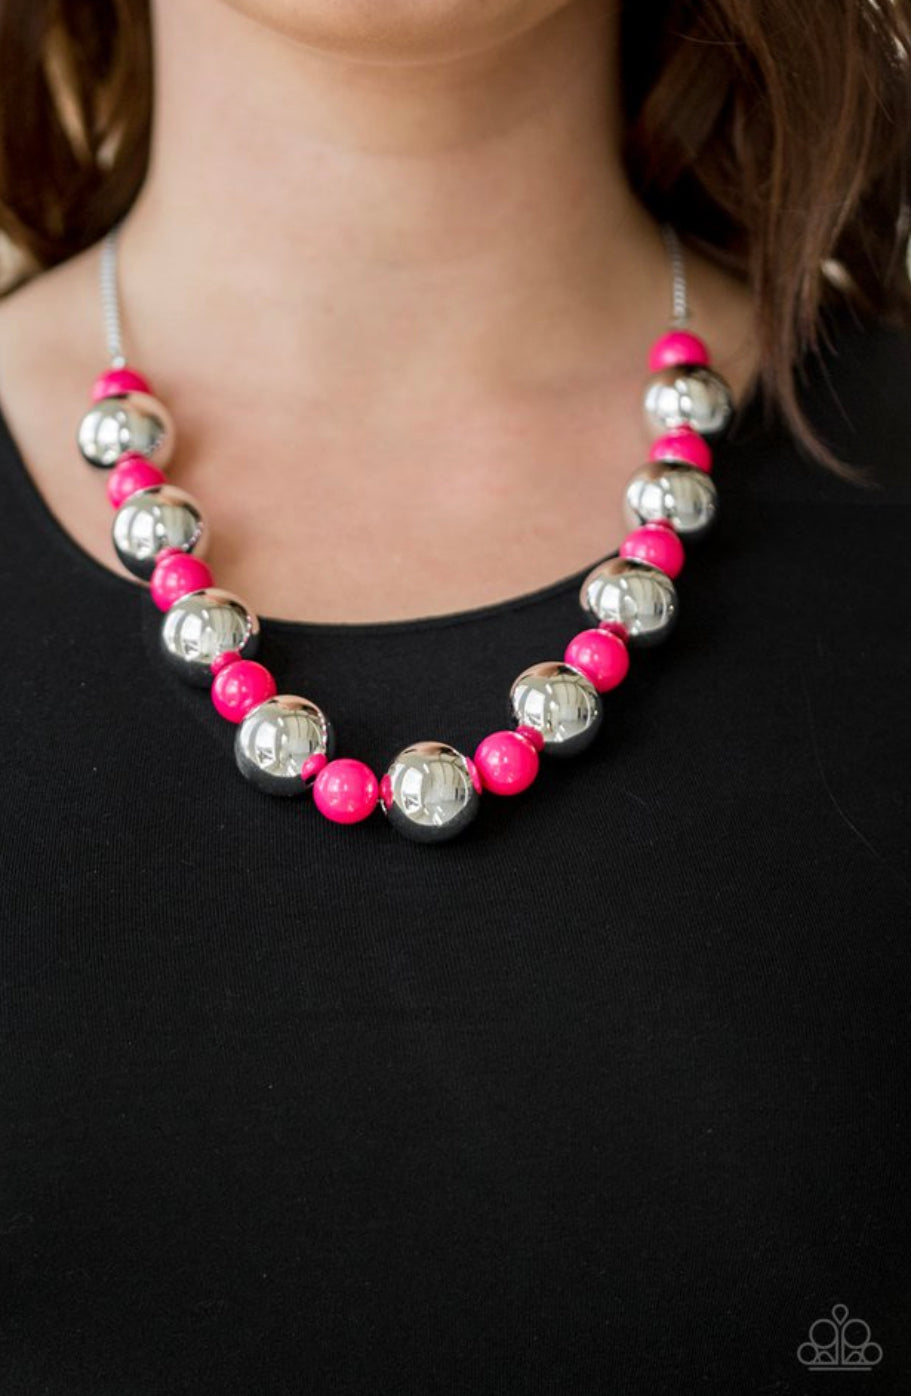 Paparazzi Top Pop - Pink Necklace